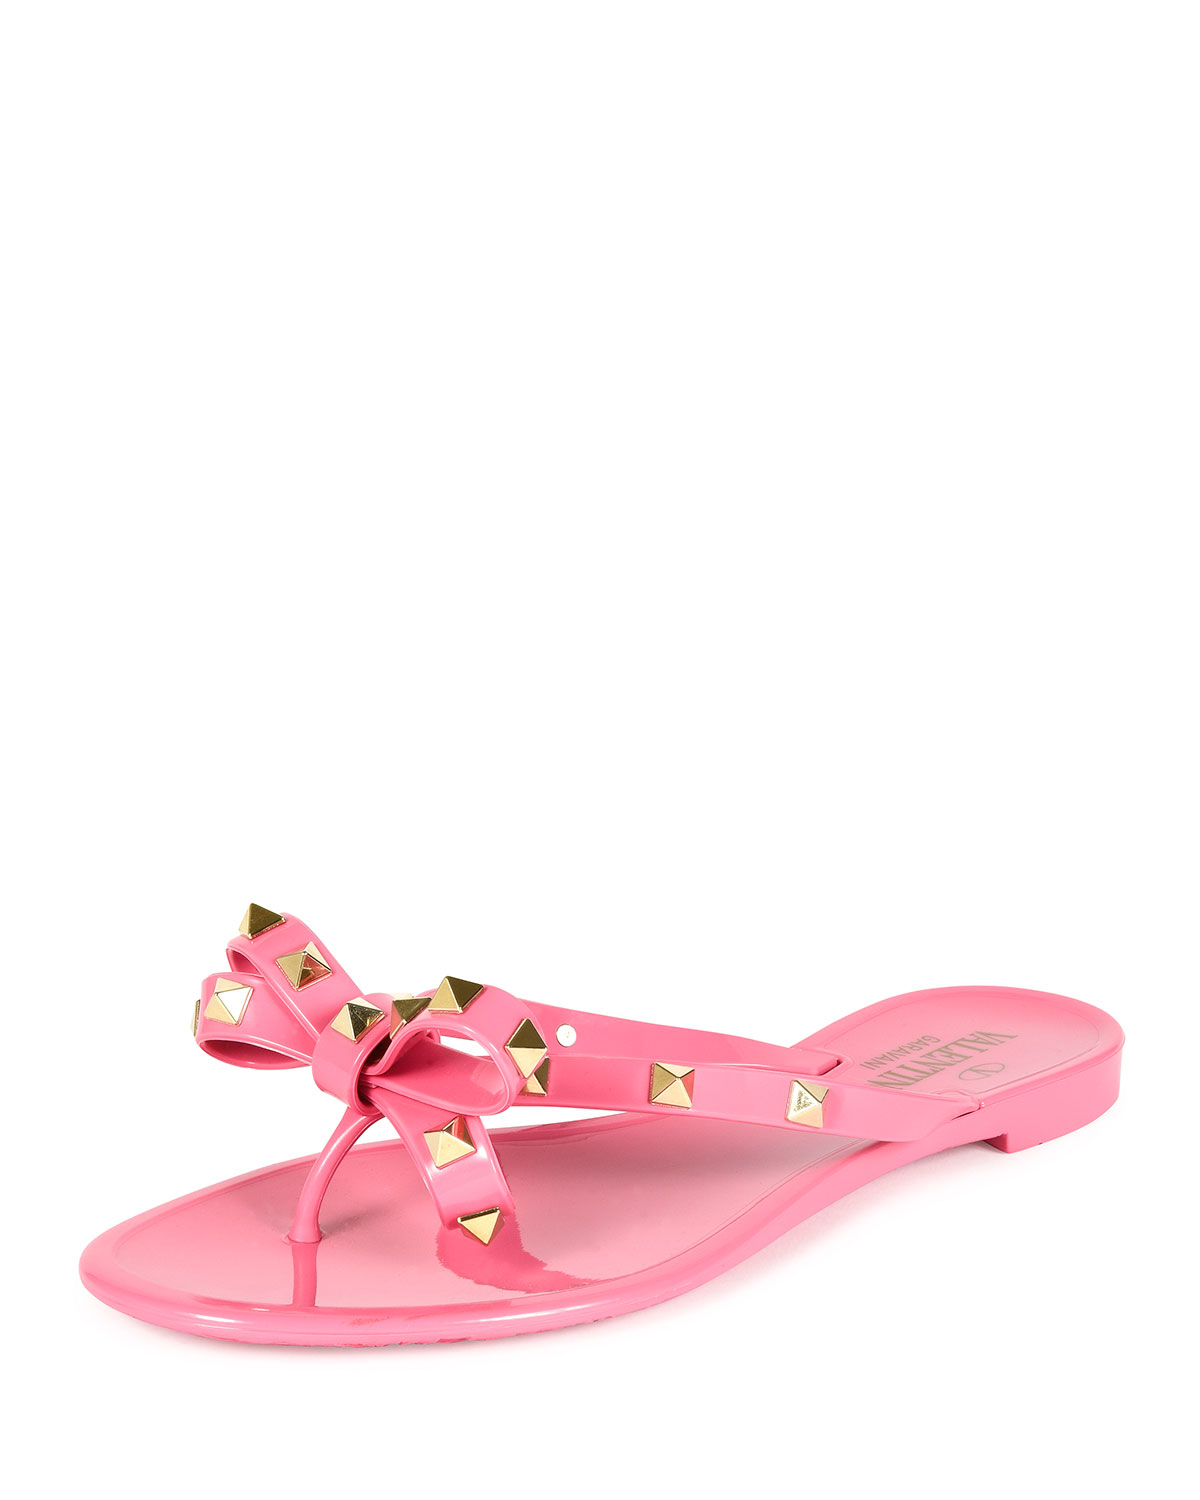 4363773bf5e4 Lyst - Valentino Rockstud Thong Sandals in Pink